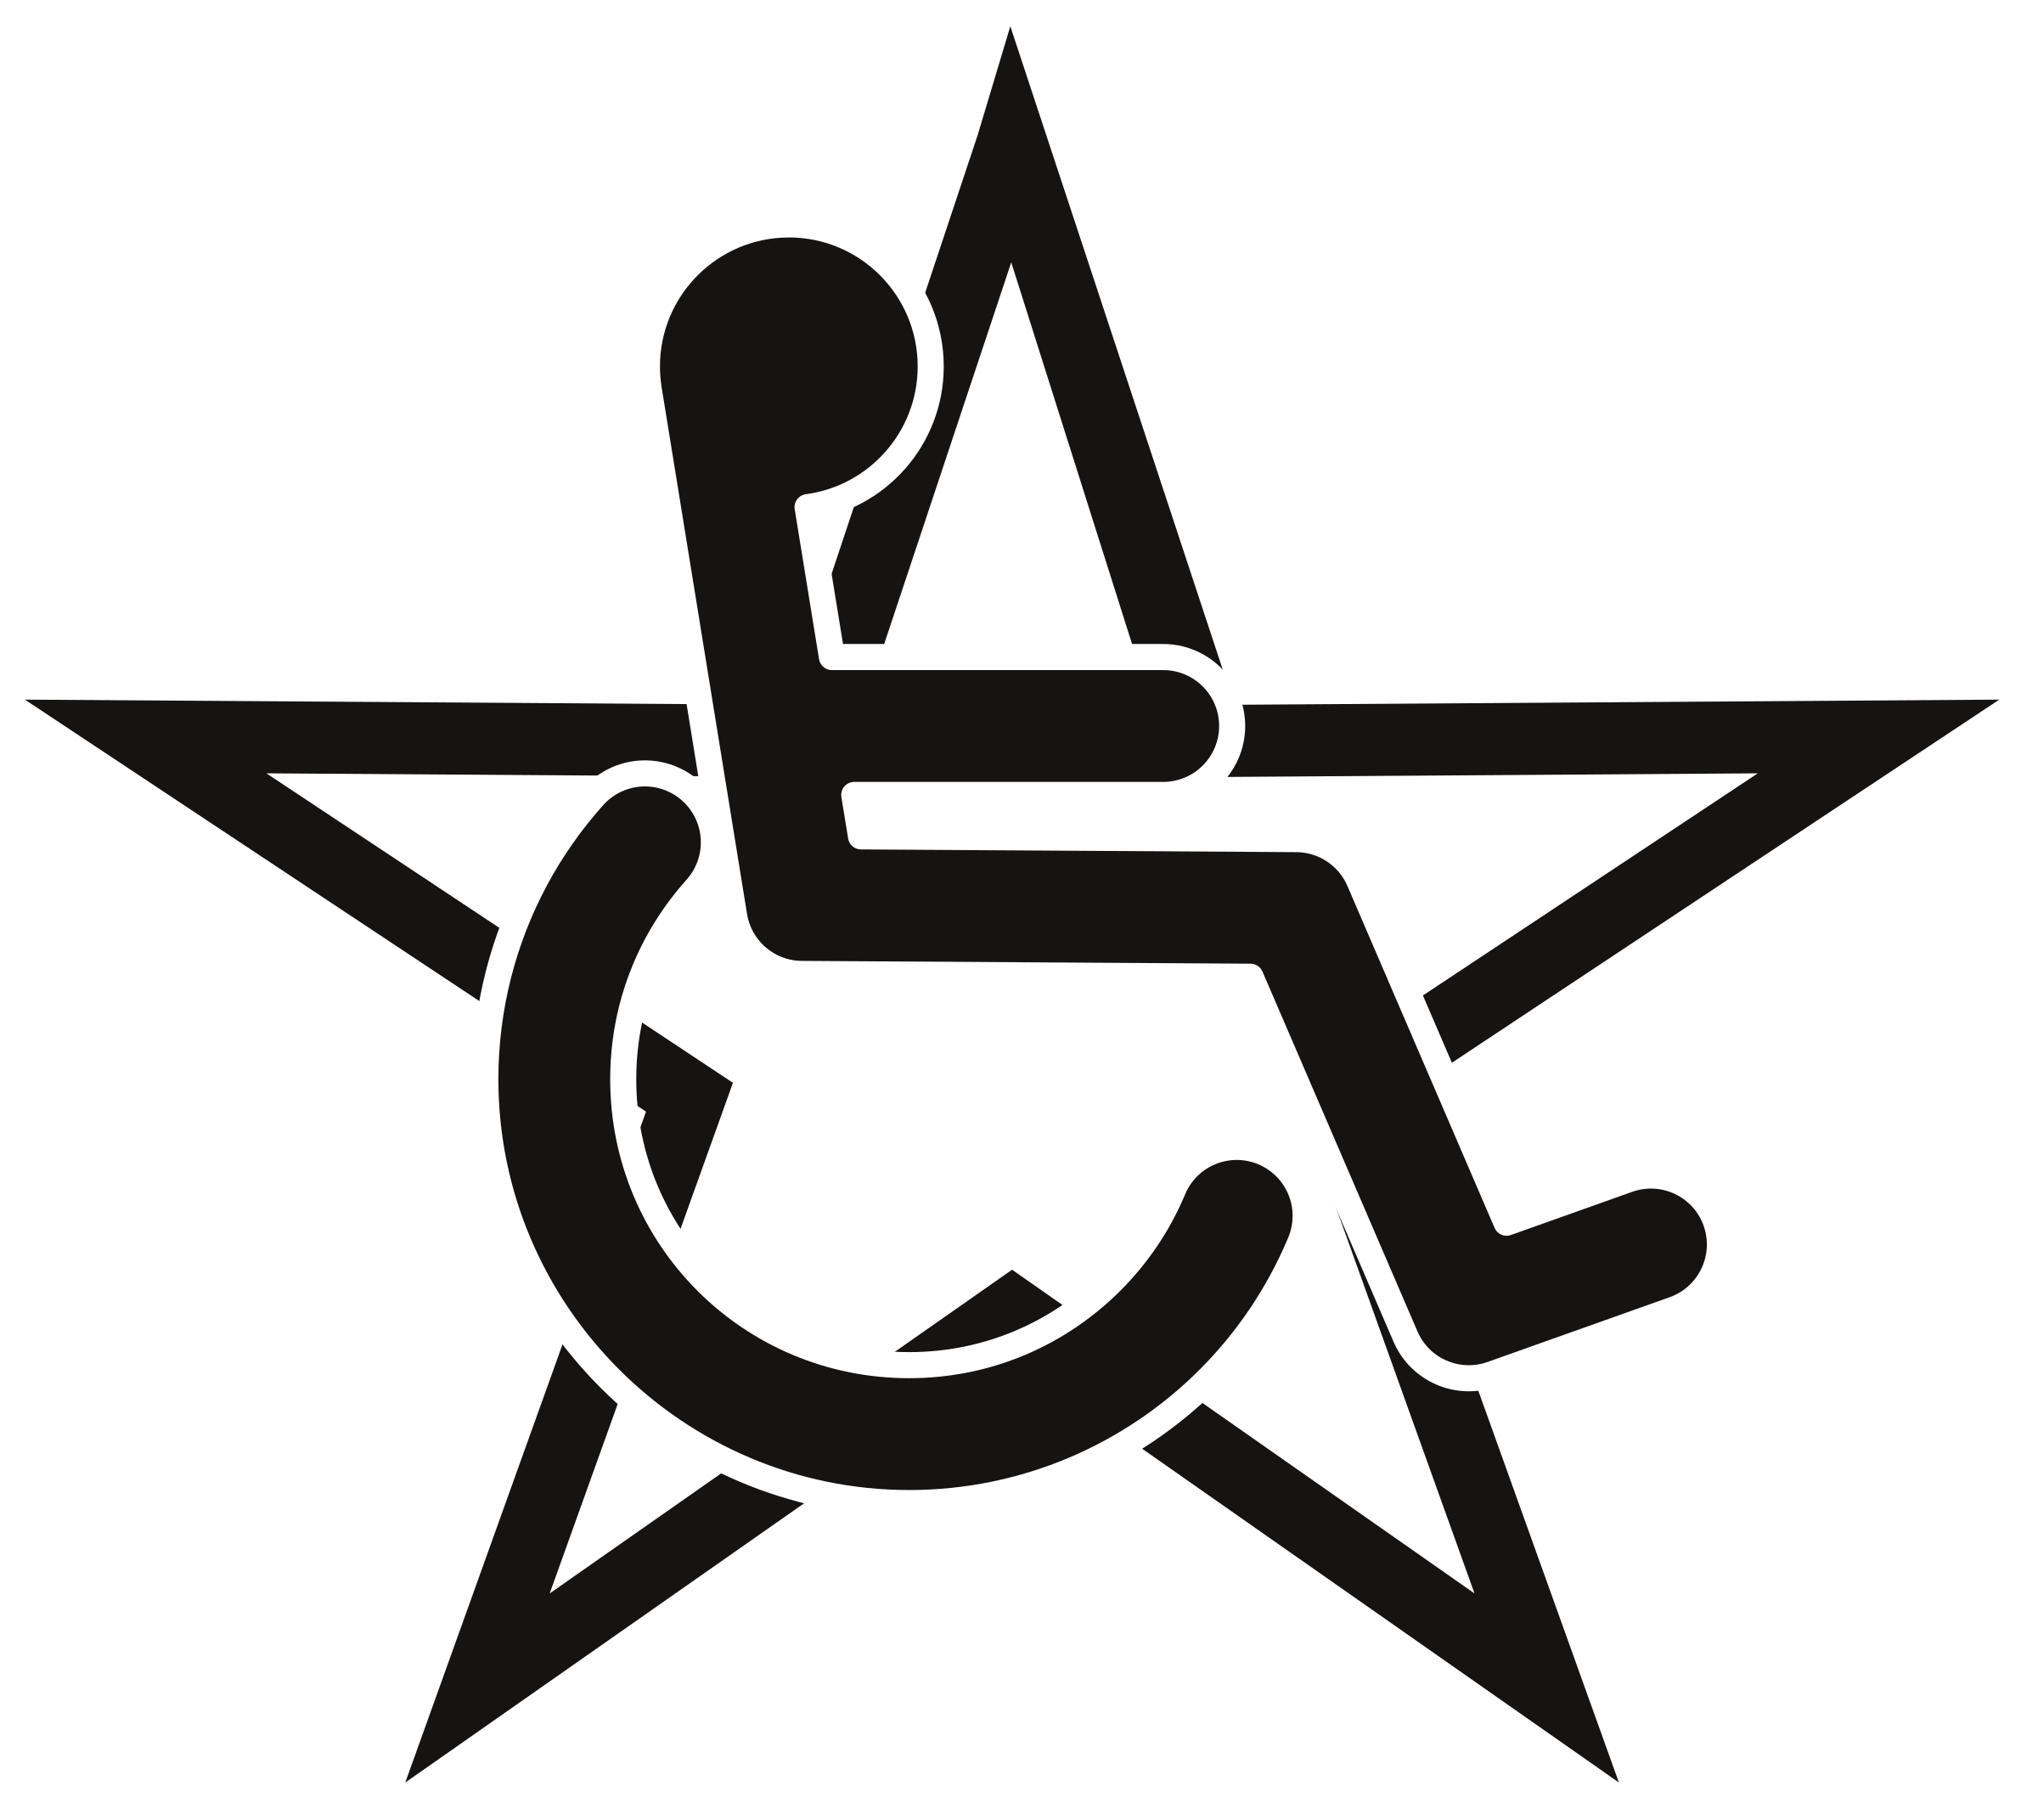 Star logo clipart svg royalty free library Clipart - Wheelchair in a Star svg royalty free library